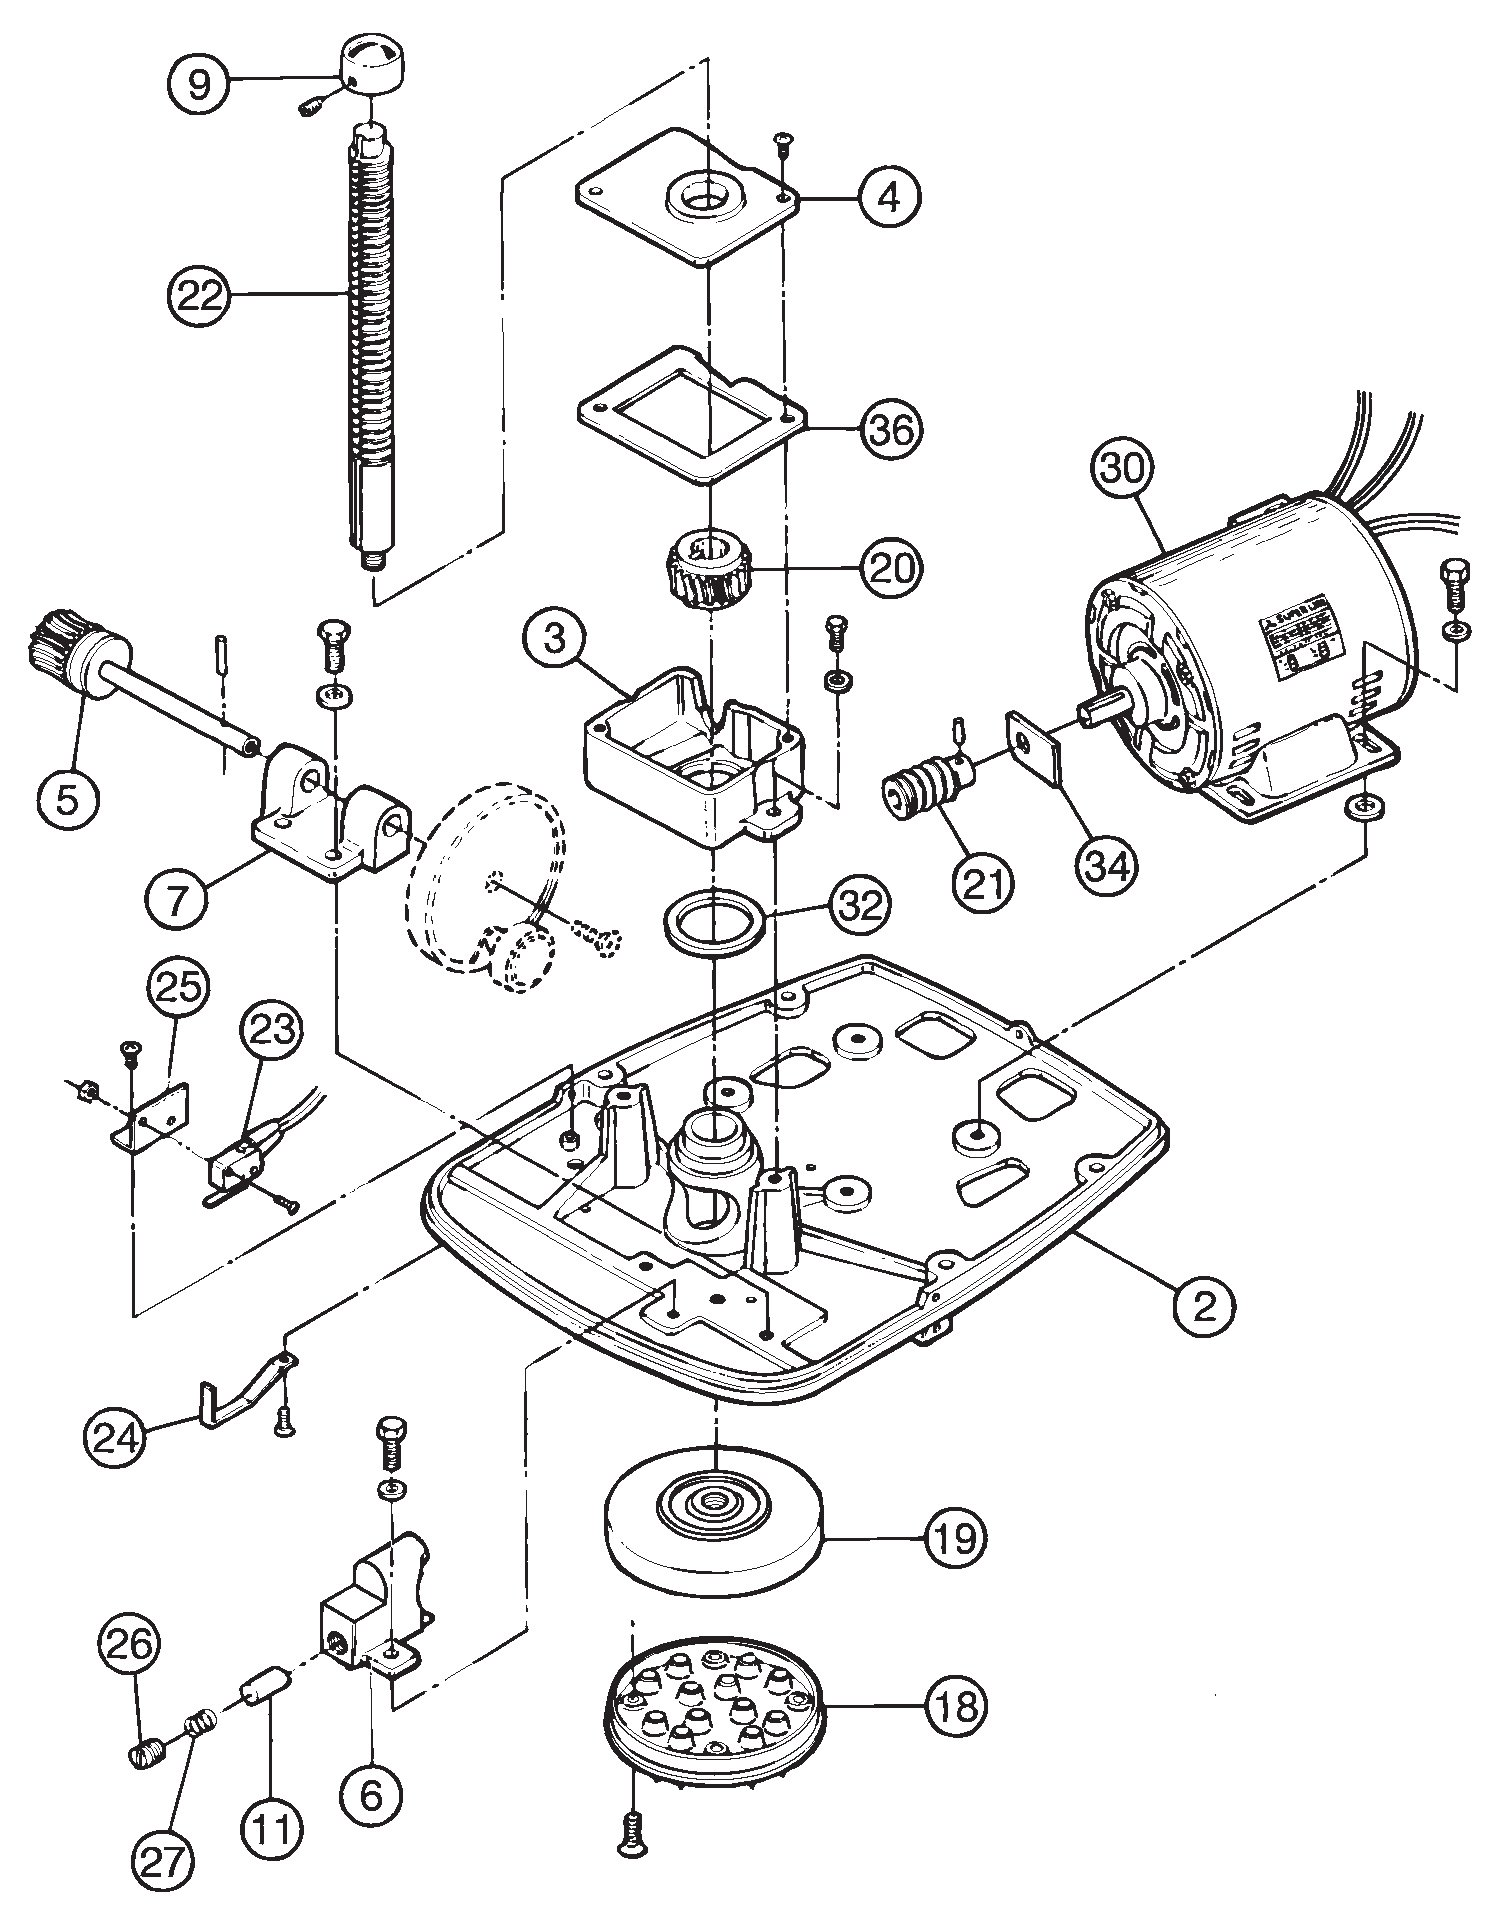 Swan Si 200e Shaver Replacement Parts